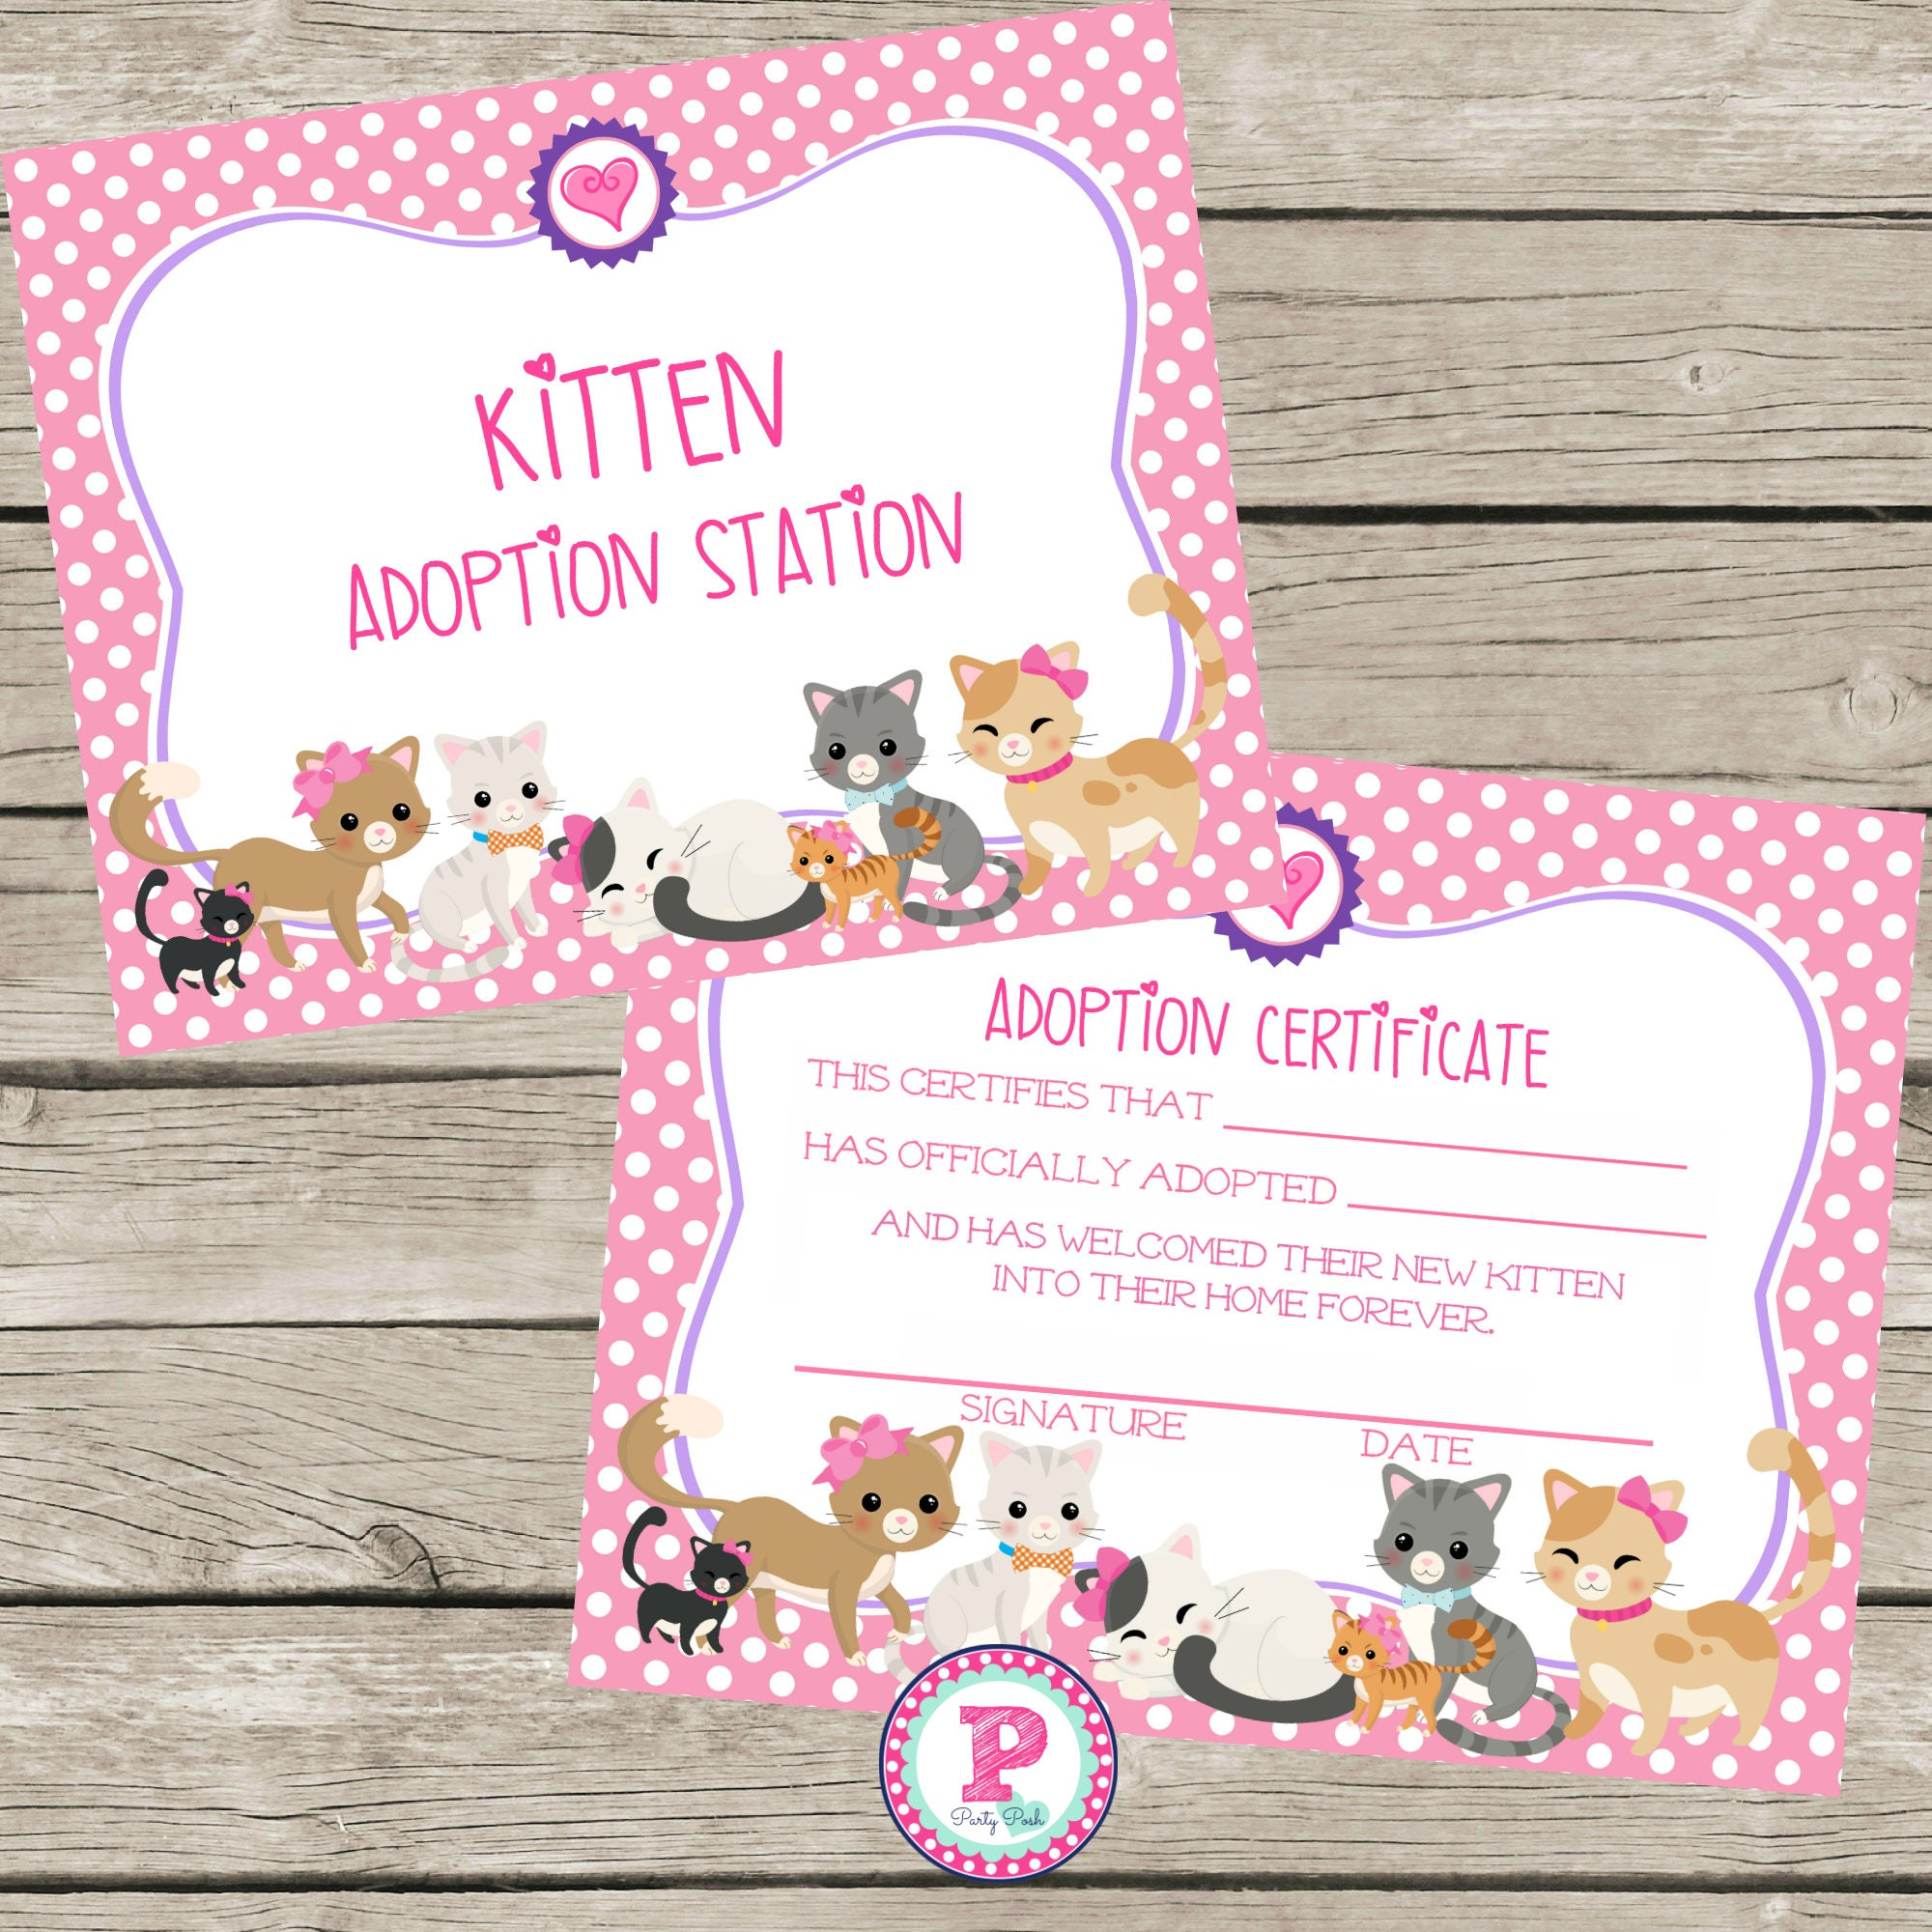 Kitten Adoption Certificate Birthday Party Ideas Polka Dot | Etsy